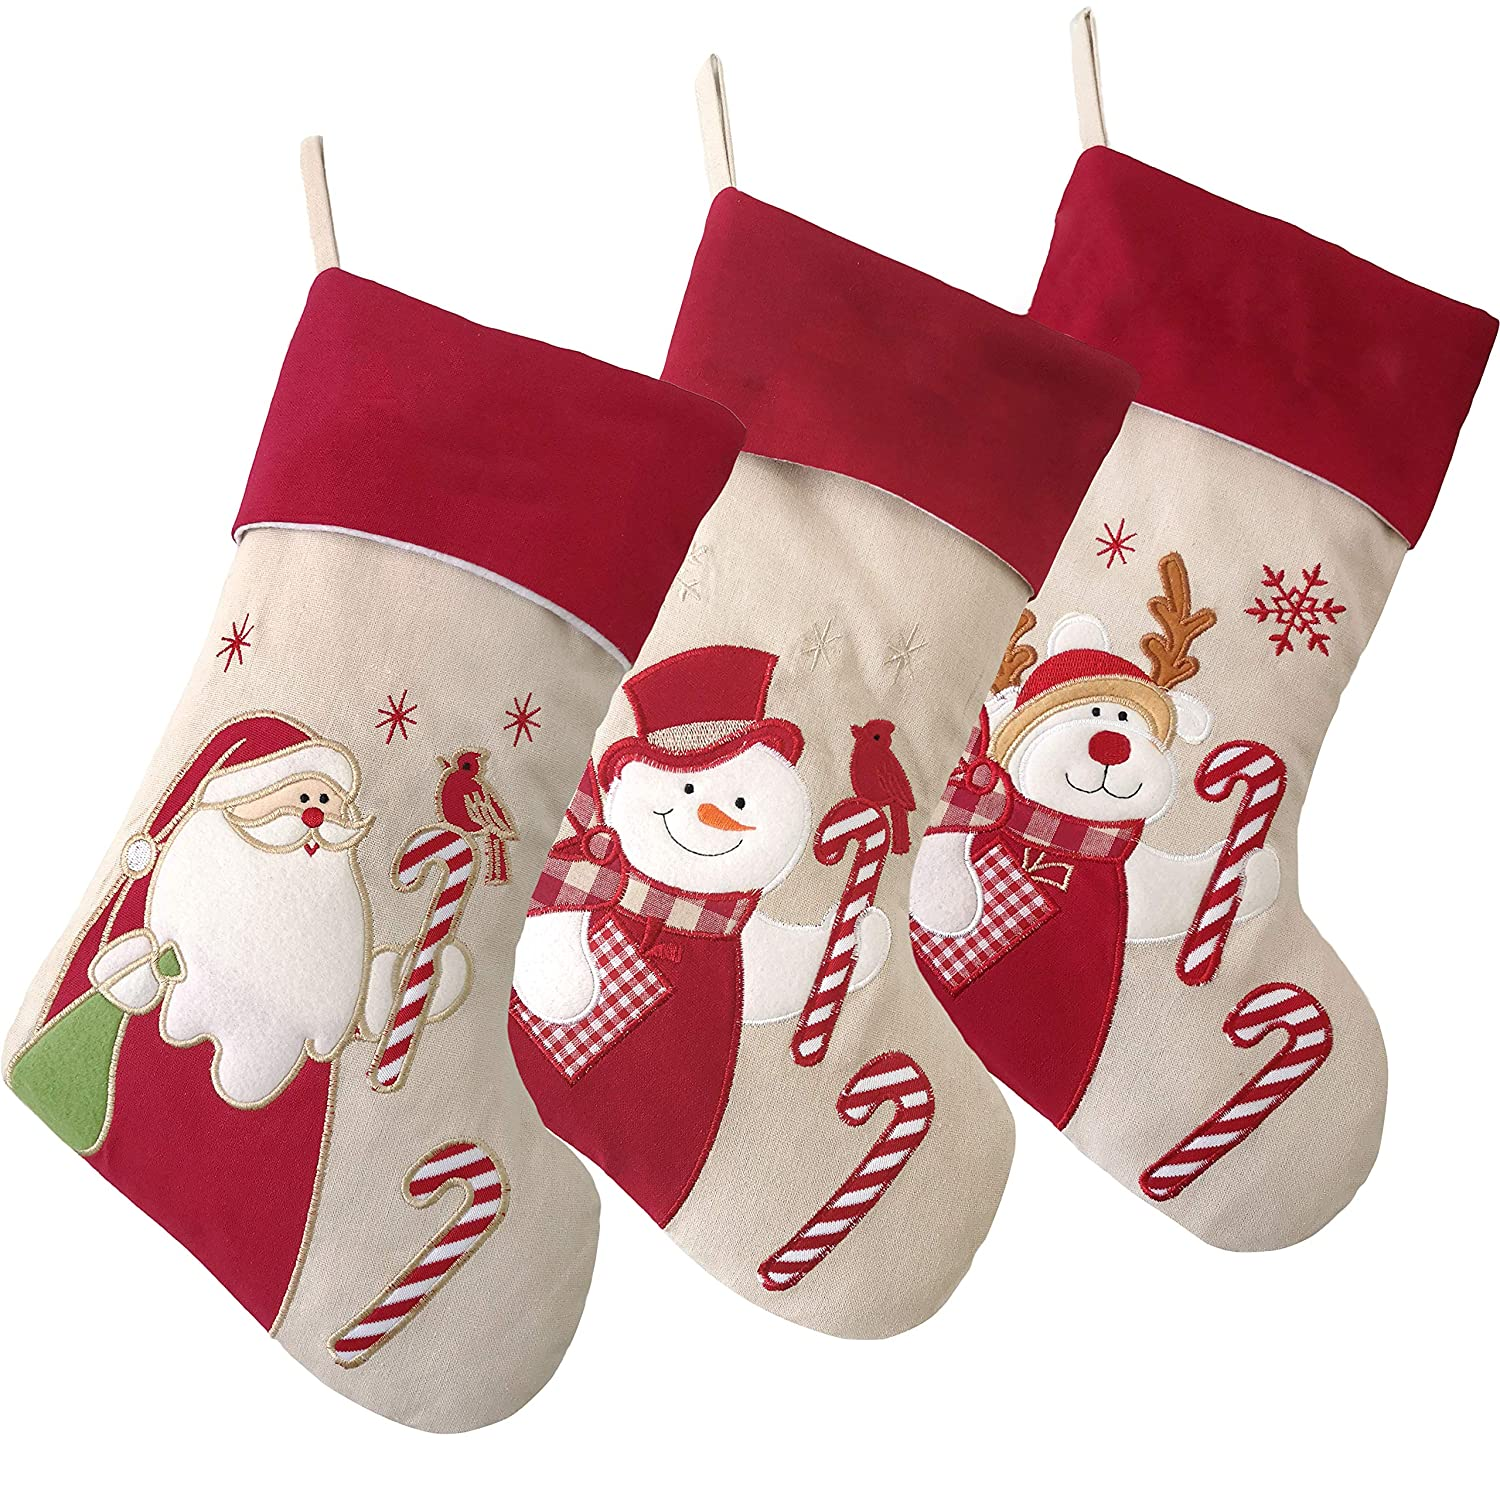 99efacf3898a0 Wewill Lovely Christmas Stockings Set of 3 Santa, Reindeer, Snowman Xmas  Character 3D Plush Linen Hanging Tag Knit Border 17-Inch (3)